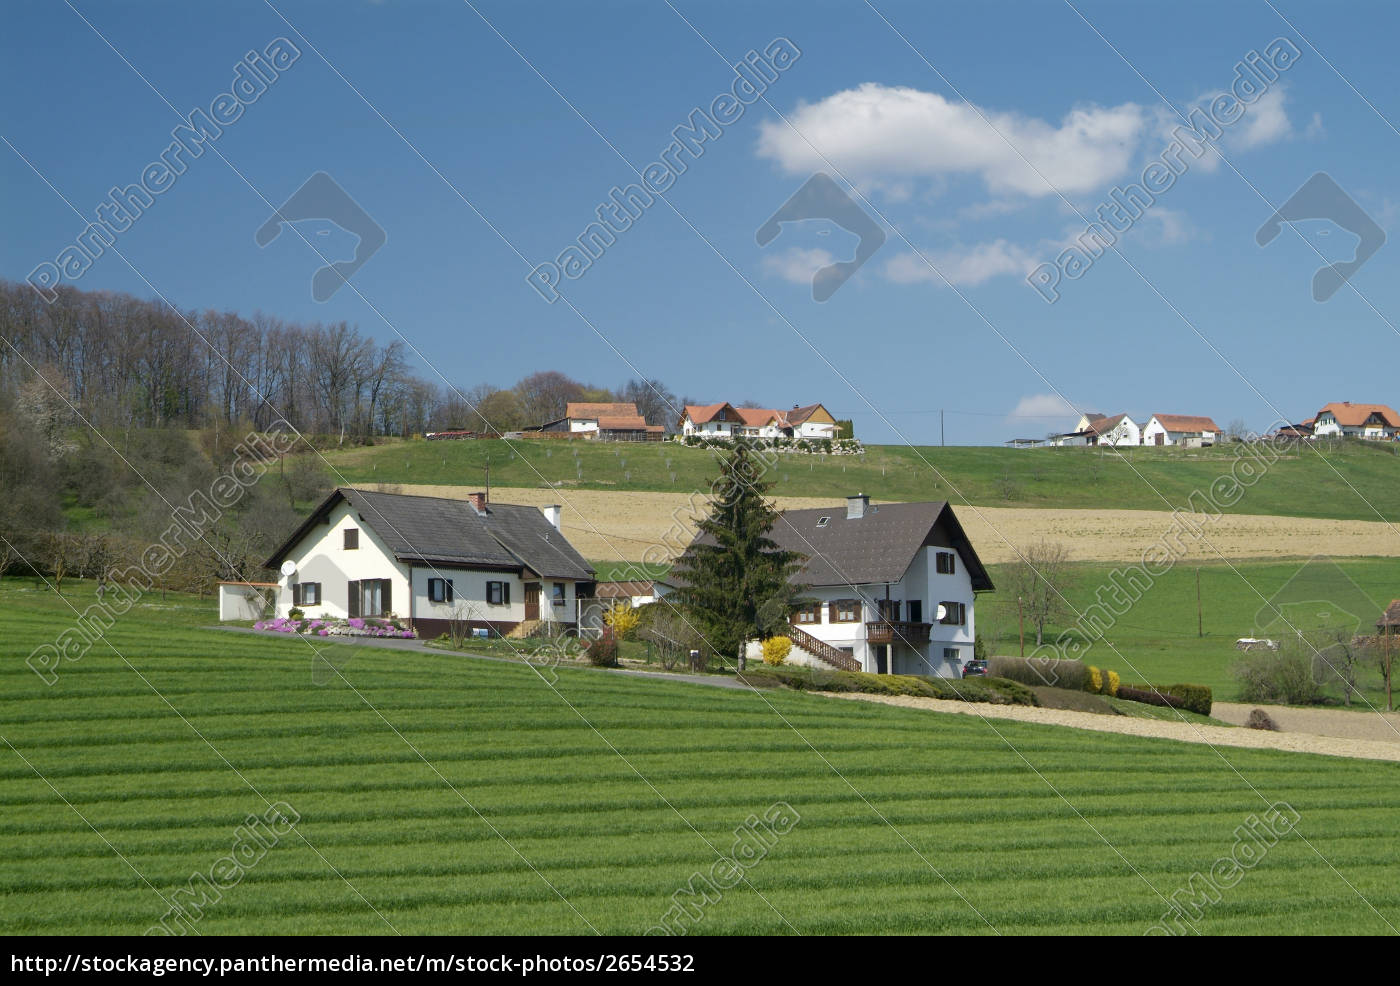 hill, house - 2654532